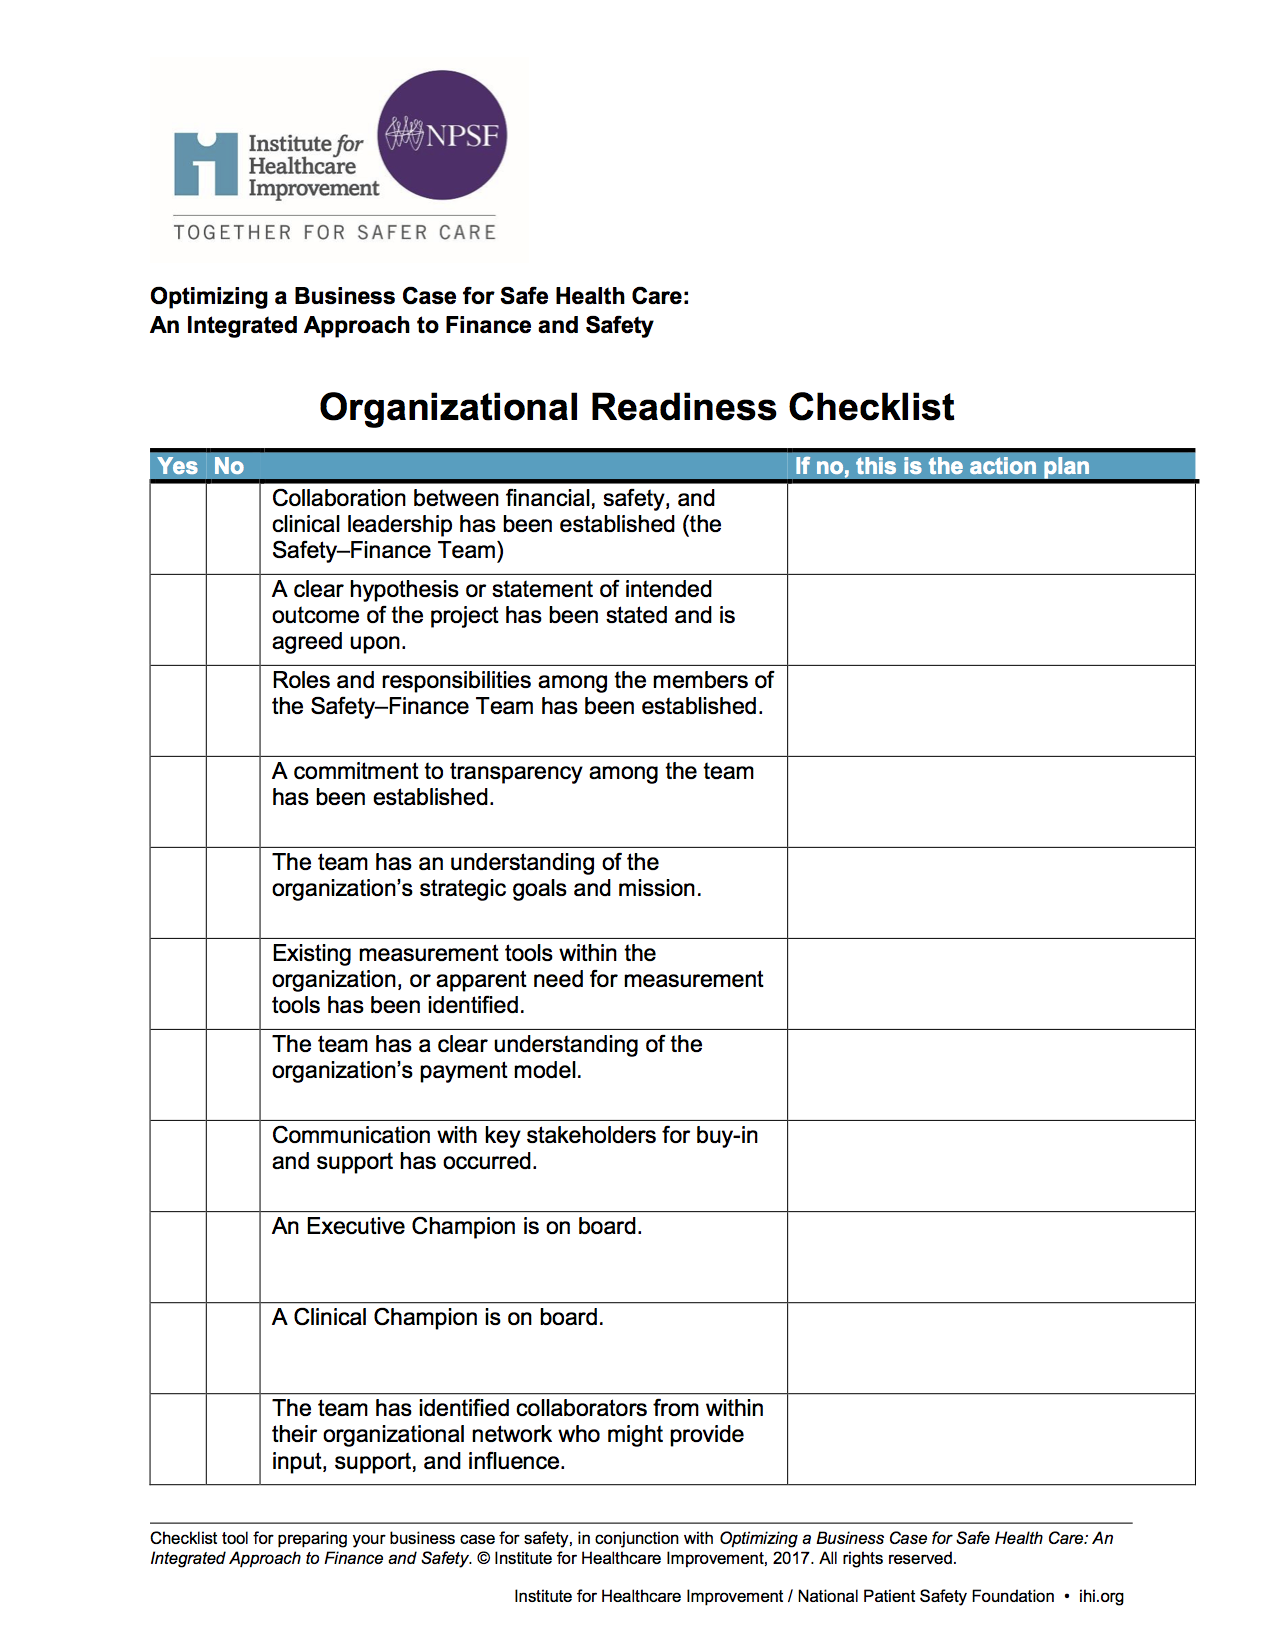 Psb Apr2018 Up Front Business Case Safe Health Care Organizational Readiness Checklist